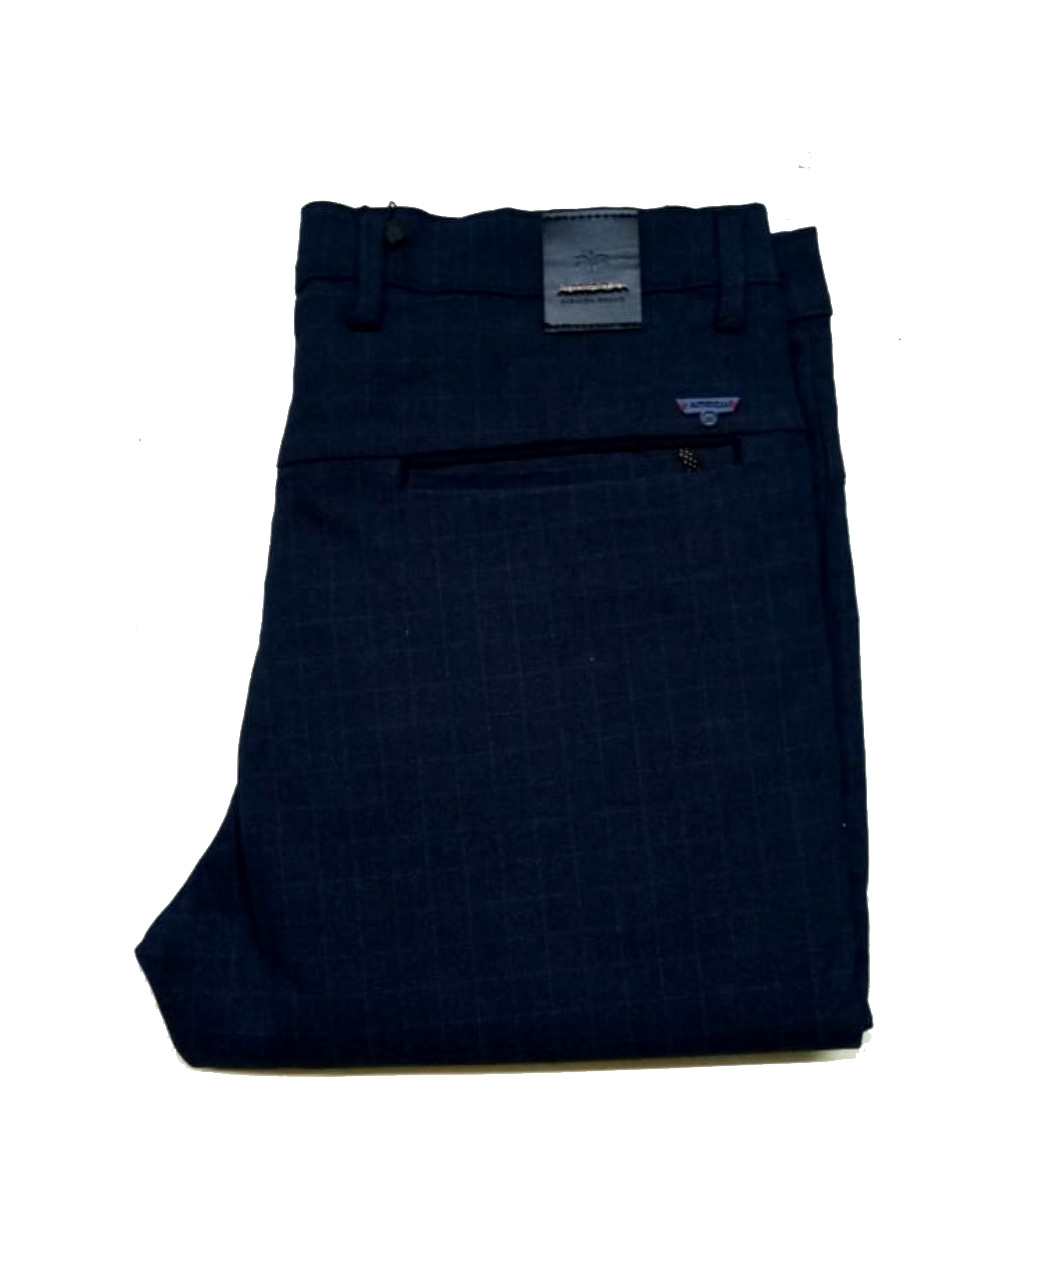 UTD D TELEGRAM-BLUE MEN'S CASUAL TROUSER